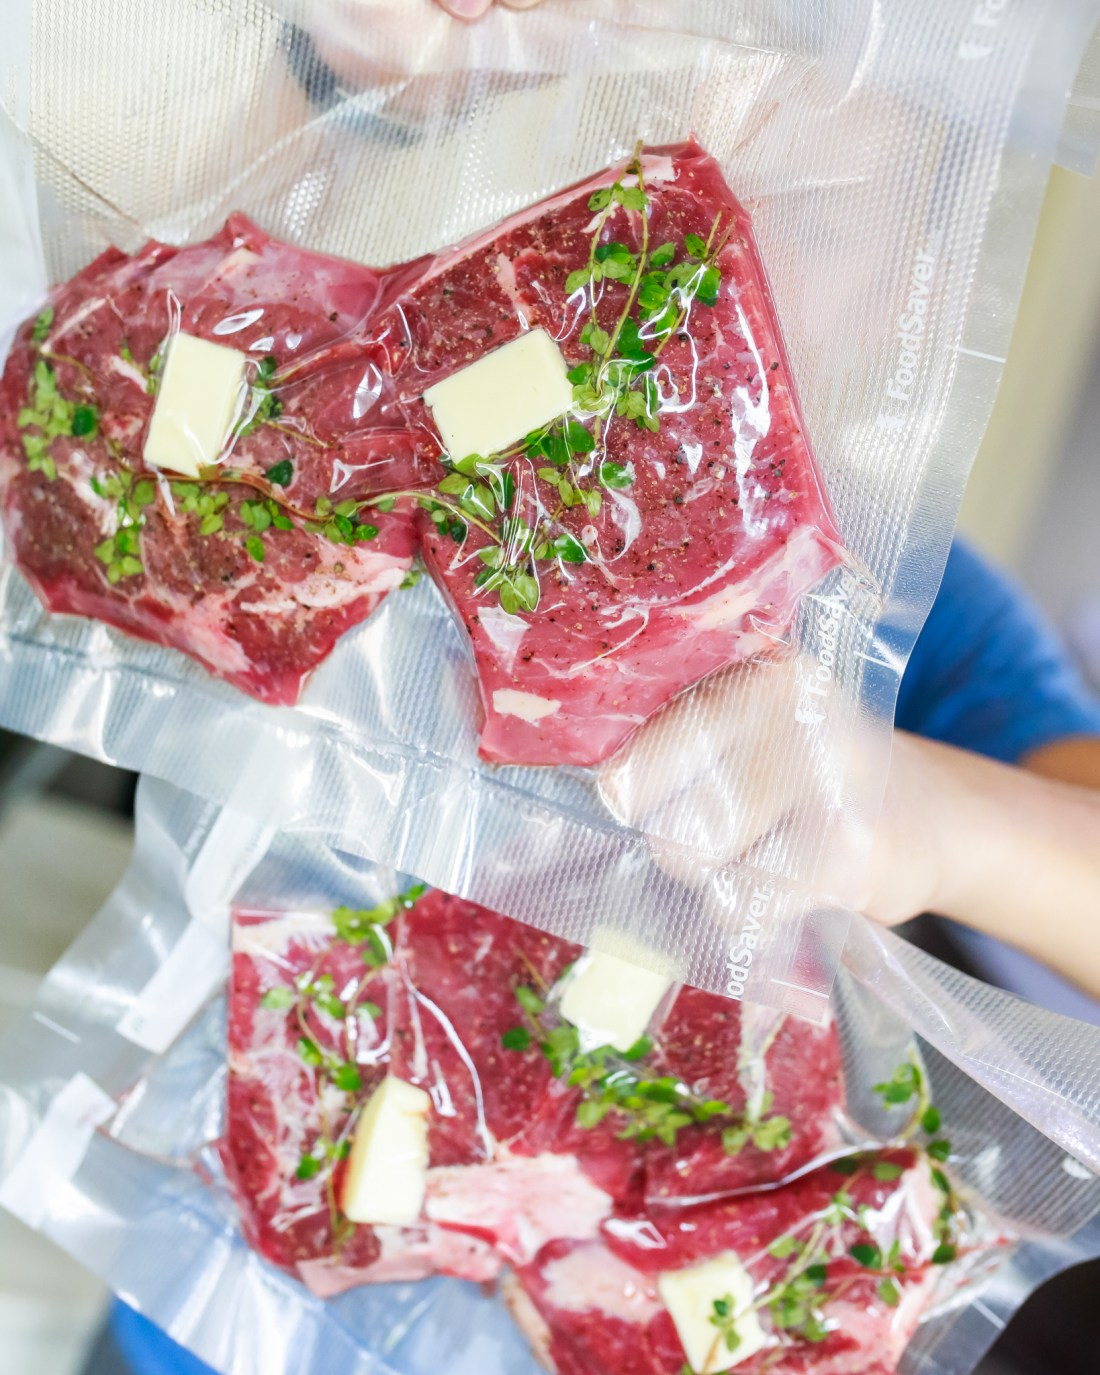 How to seal the bag when cooking sous vide